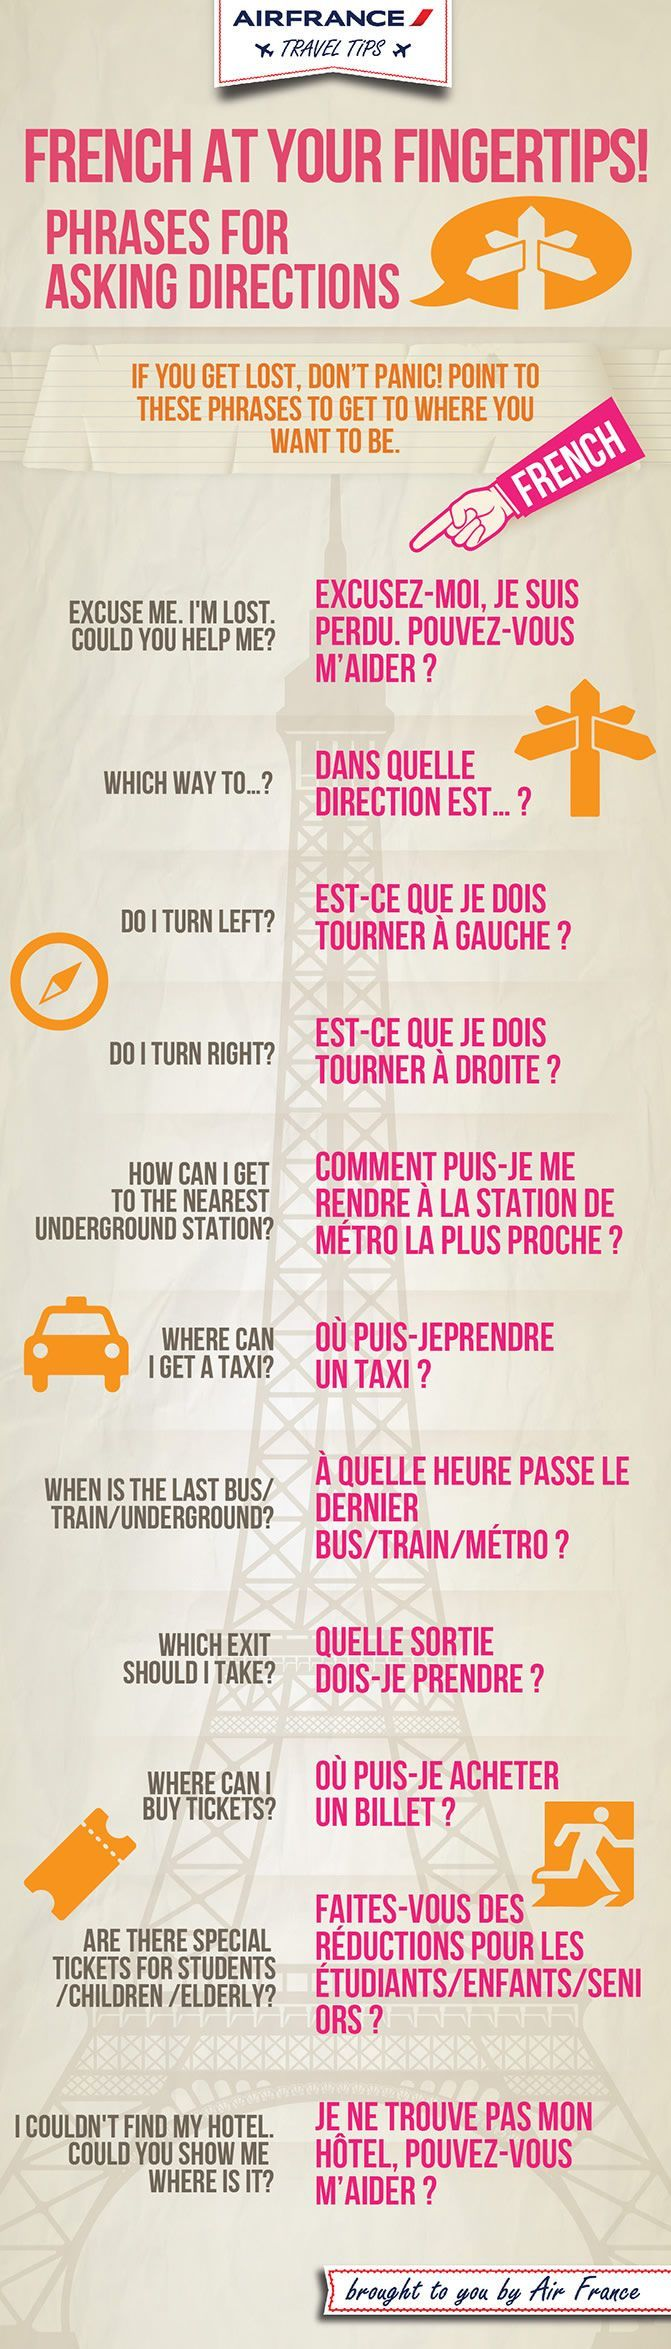 French at your fingertips!